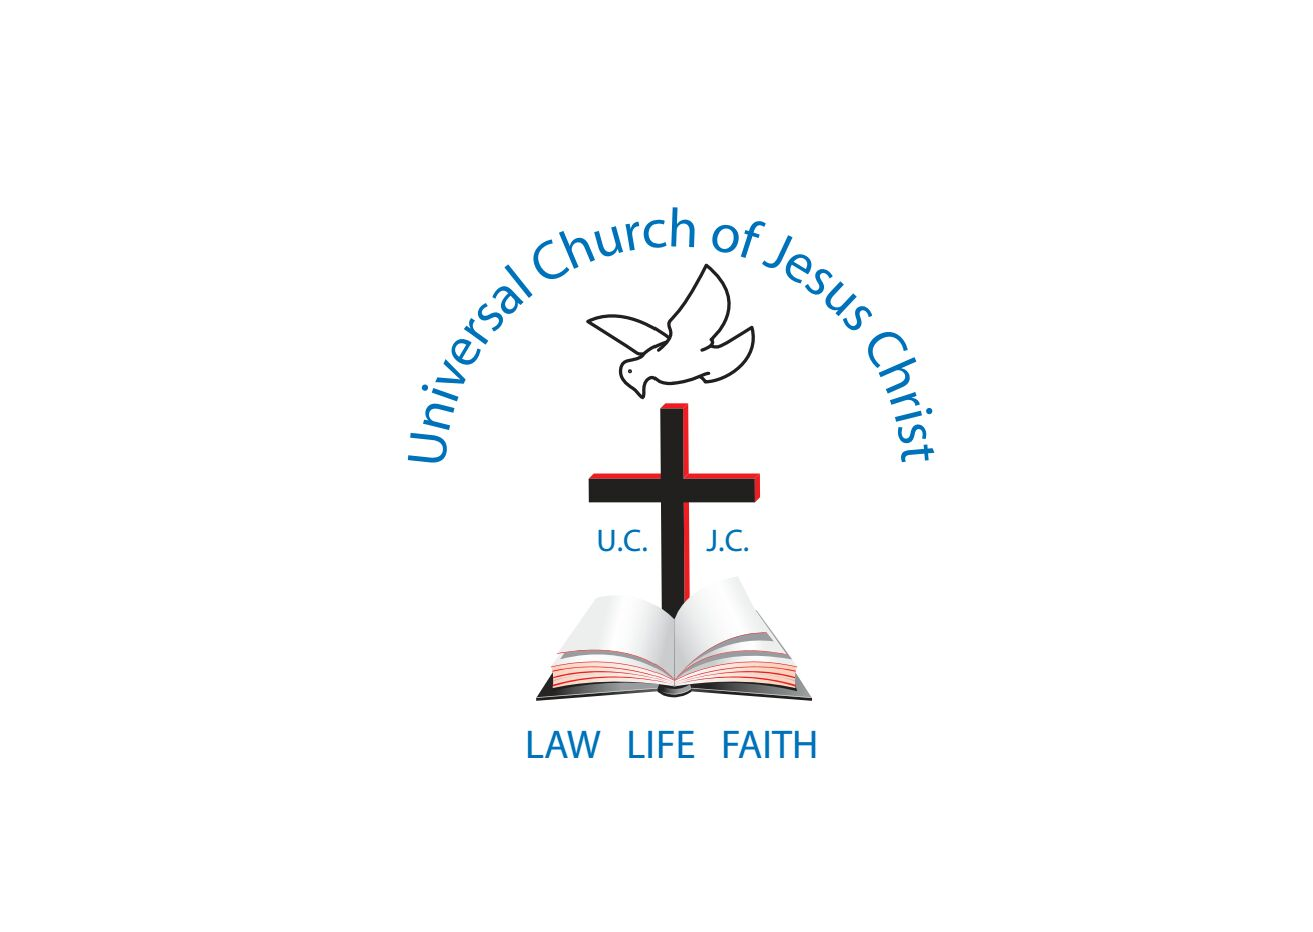 Universal Church of Jesus Christ